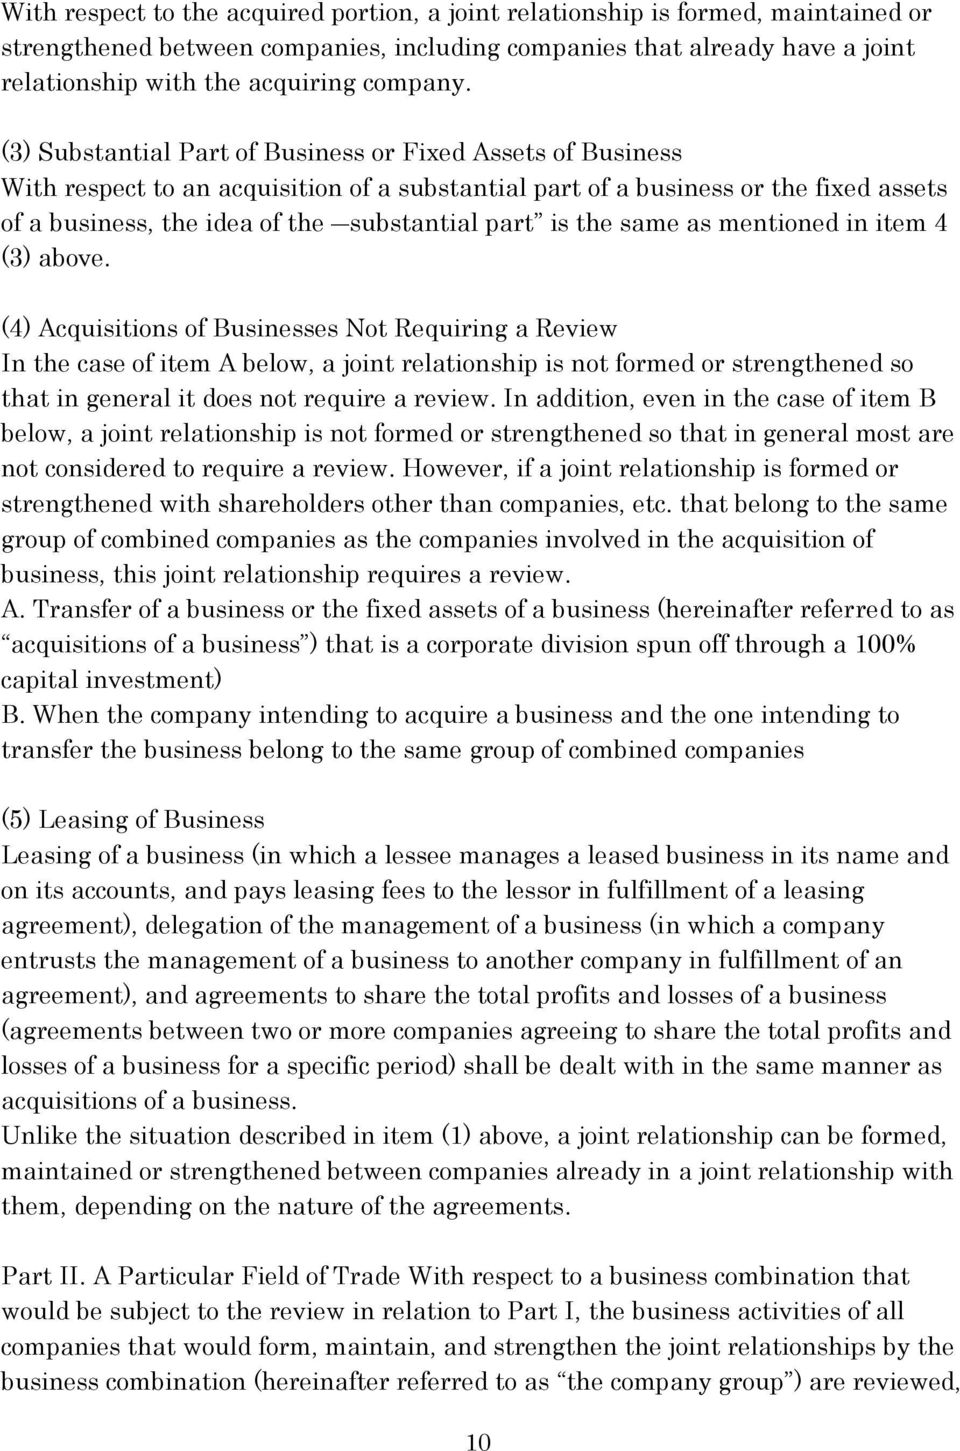 (3) Substantial Part of Business or Fixed Assets of Business With respect to an acquisition of a substantial part of a business or the fixed assets of a business, the idea of the substantial part is